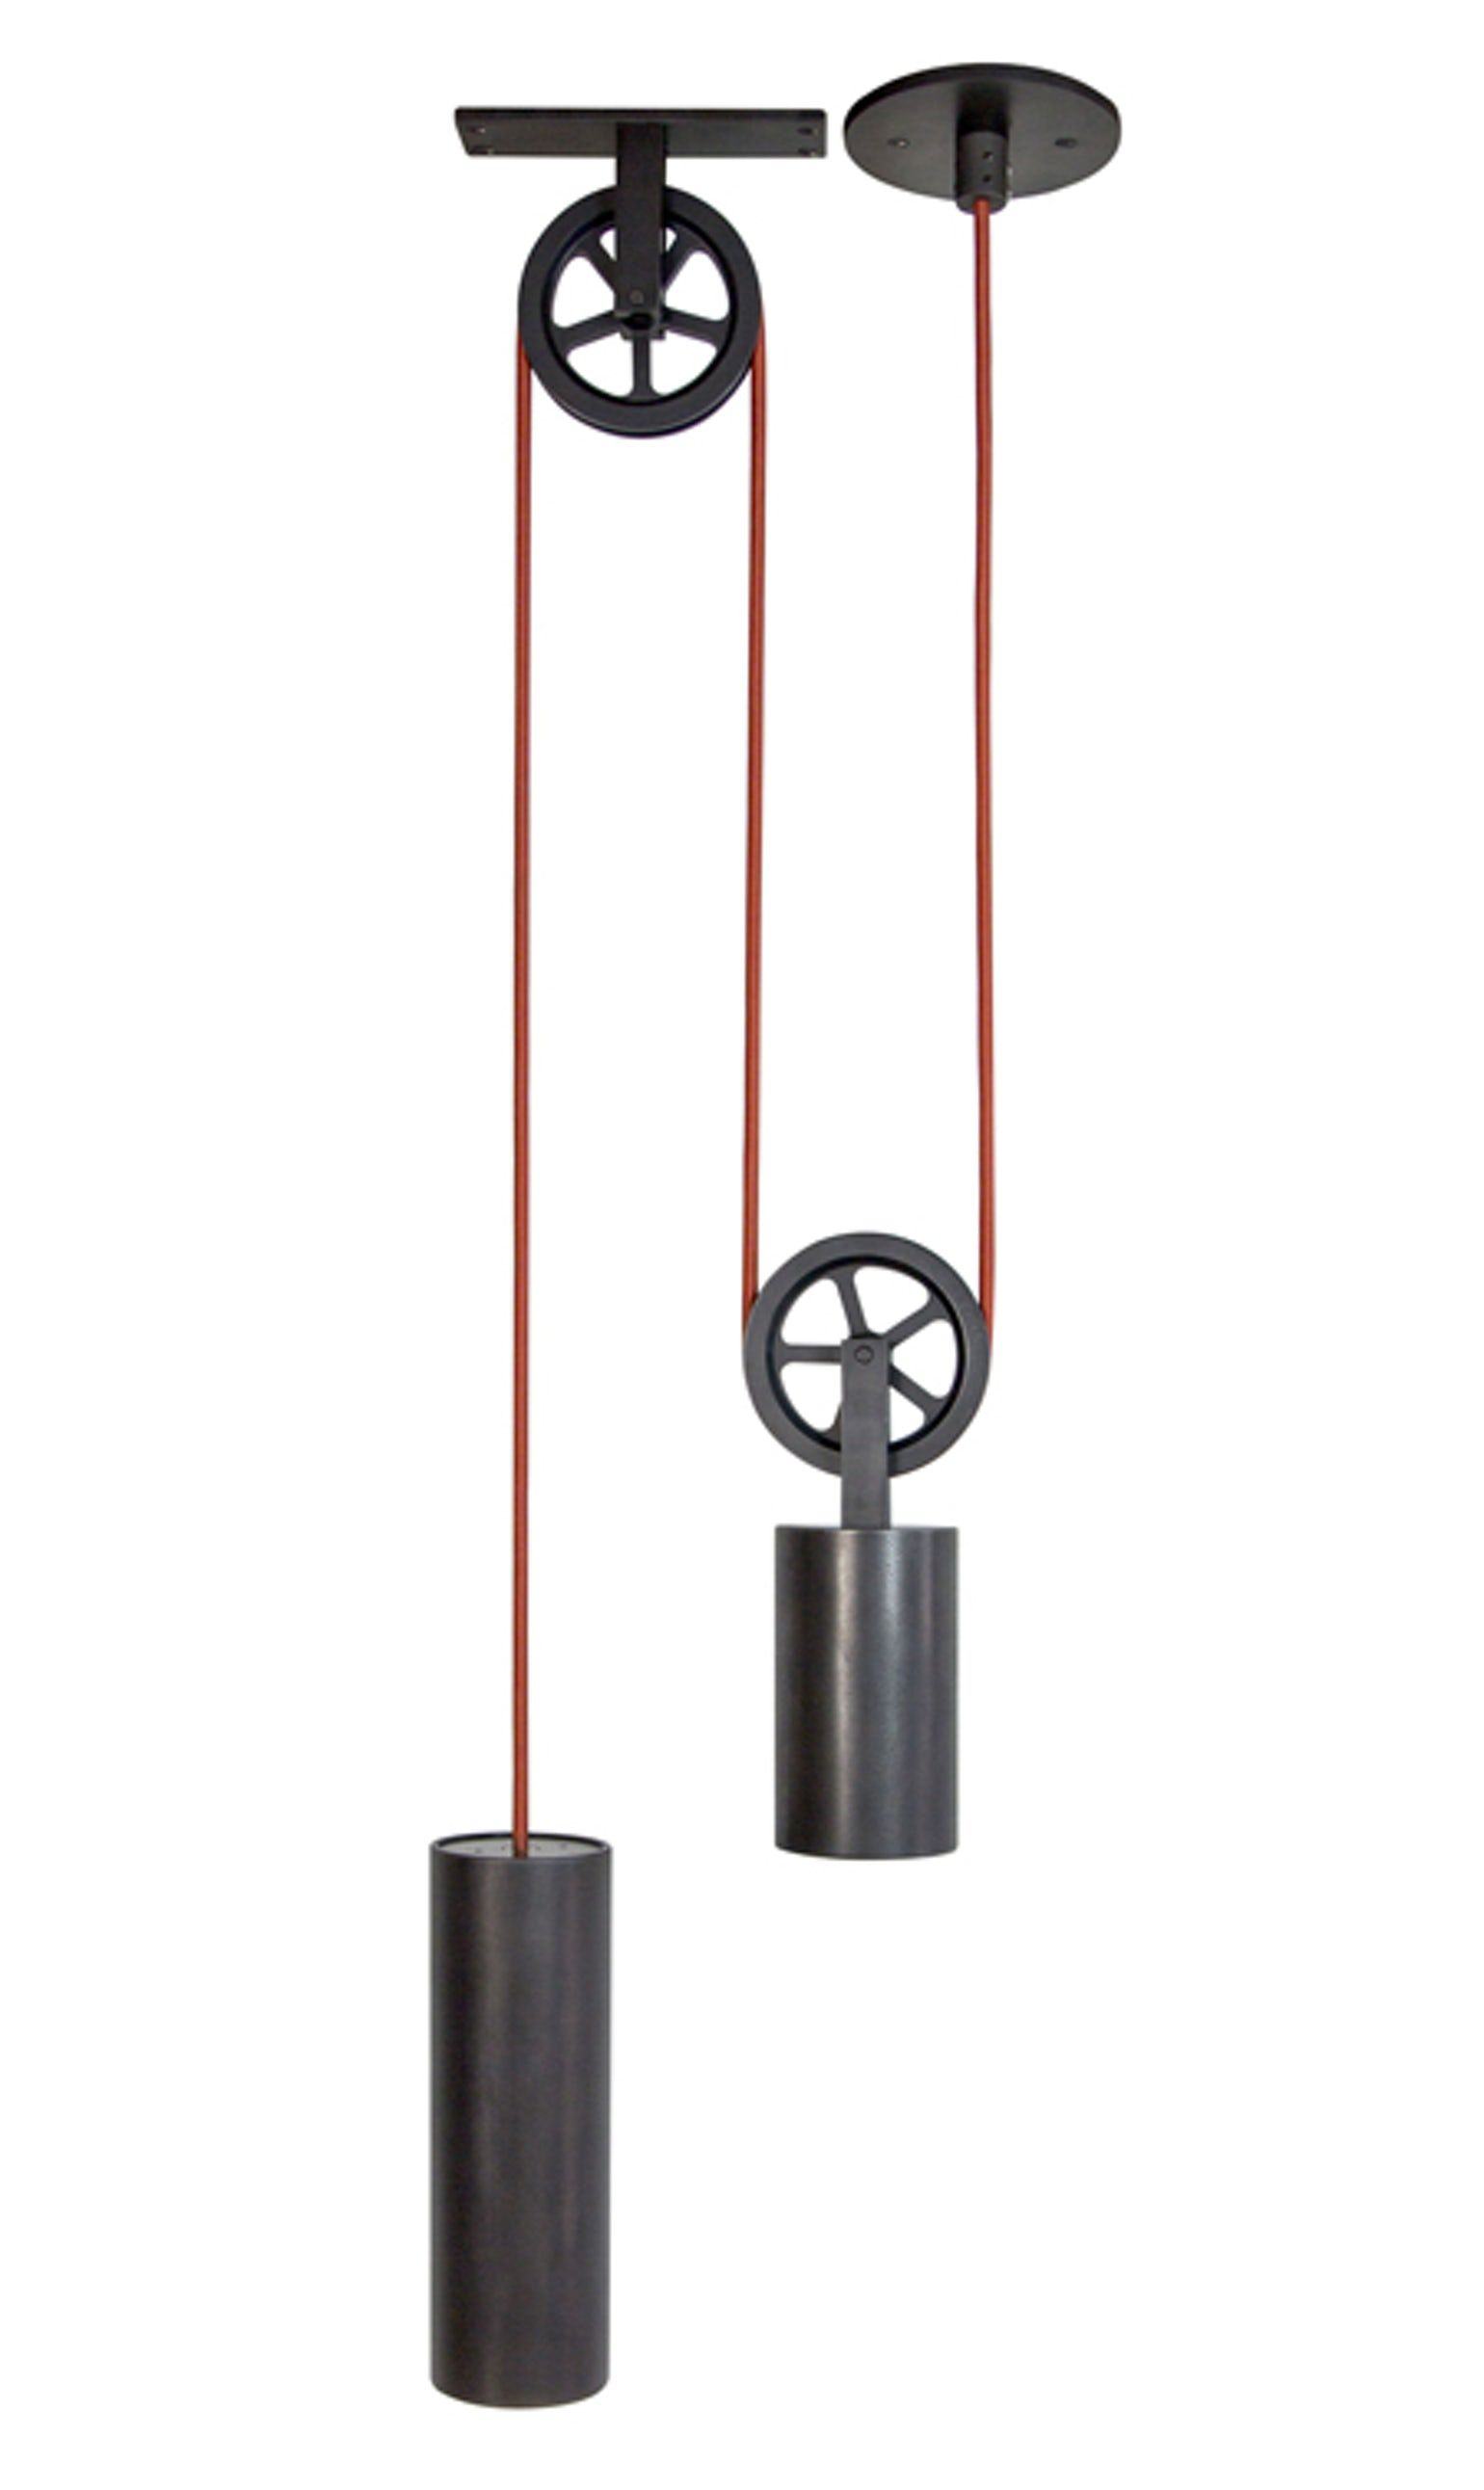 Pendant Pulley Light Contemporary Industrial Transitional Pendants Dering Hall Pulley Pendant Light Pulley Light Pulley Light Fixture